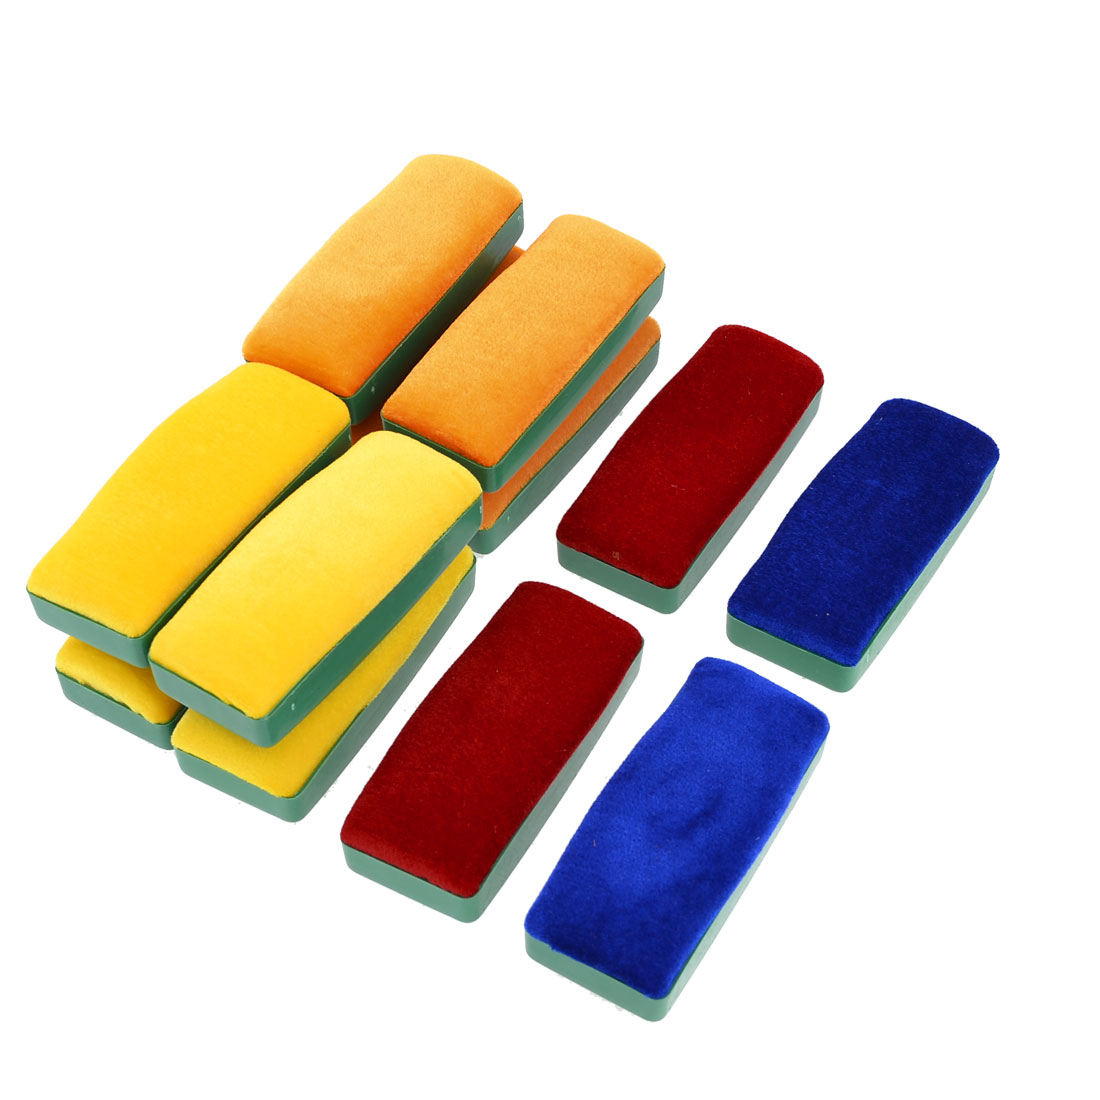 12 Pcs Green Plastic Housing Velvet Blackboard Eraser Chalk Cleaner